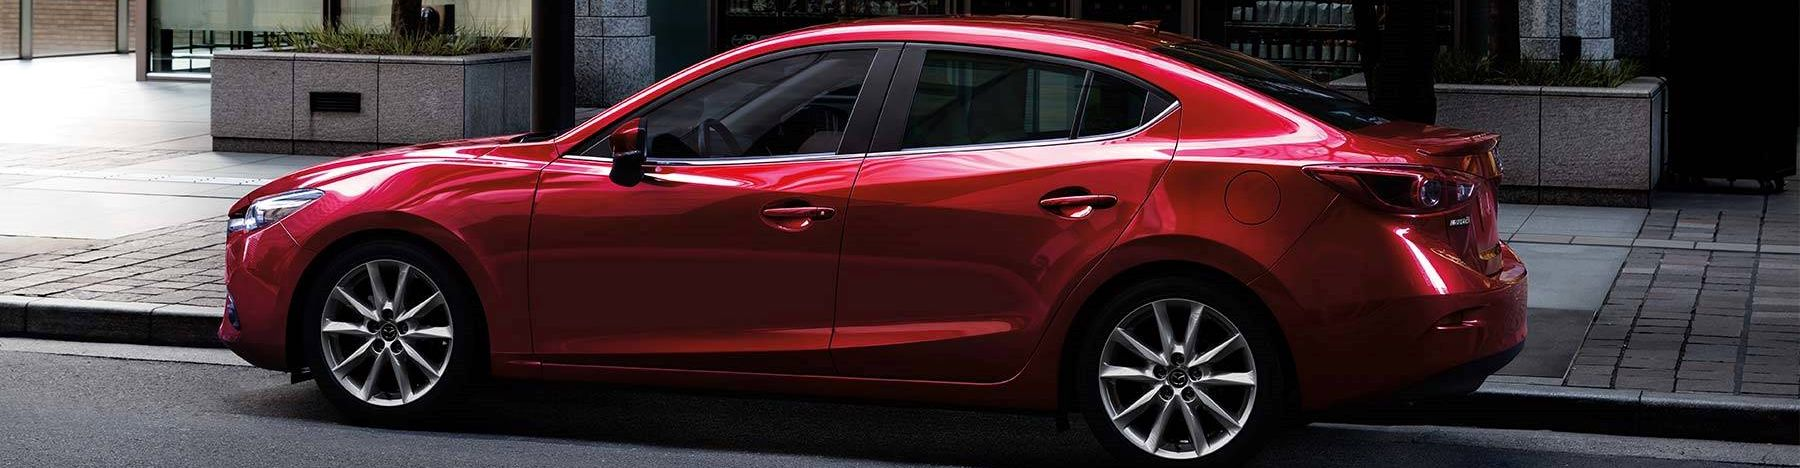 2018 Mazda3 Leasing Near Frederick, MD